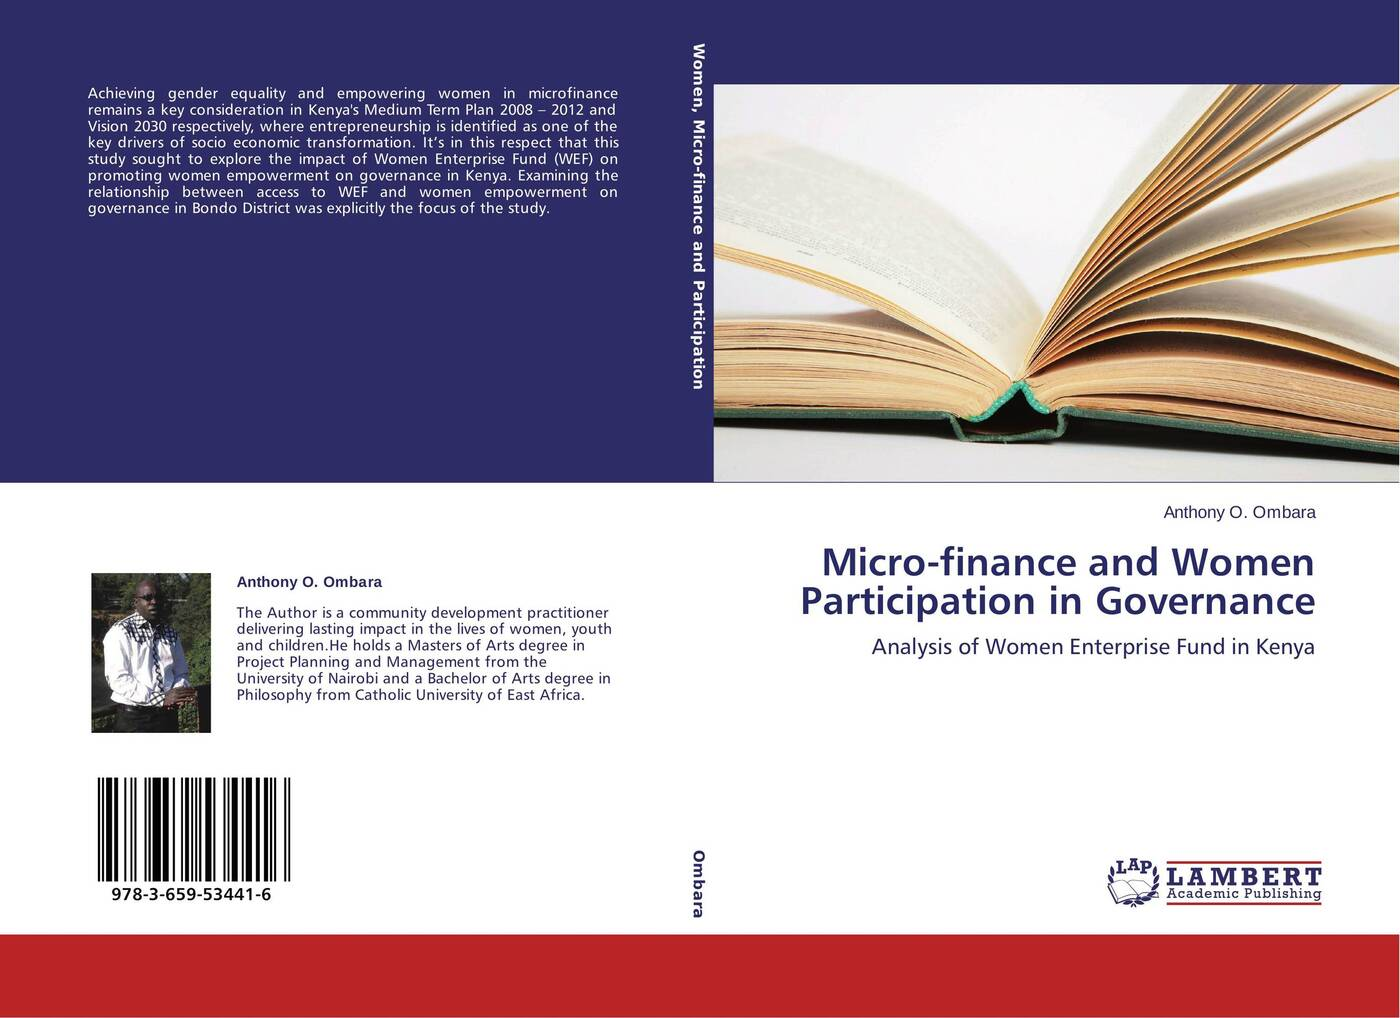 Anthony O. Ombara Micro-finance and Women Participation in Governance